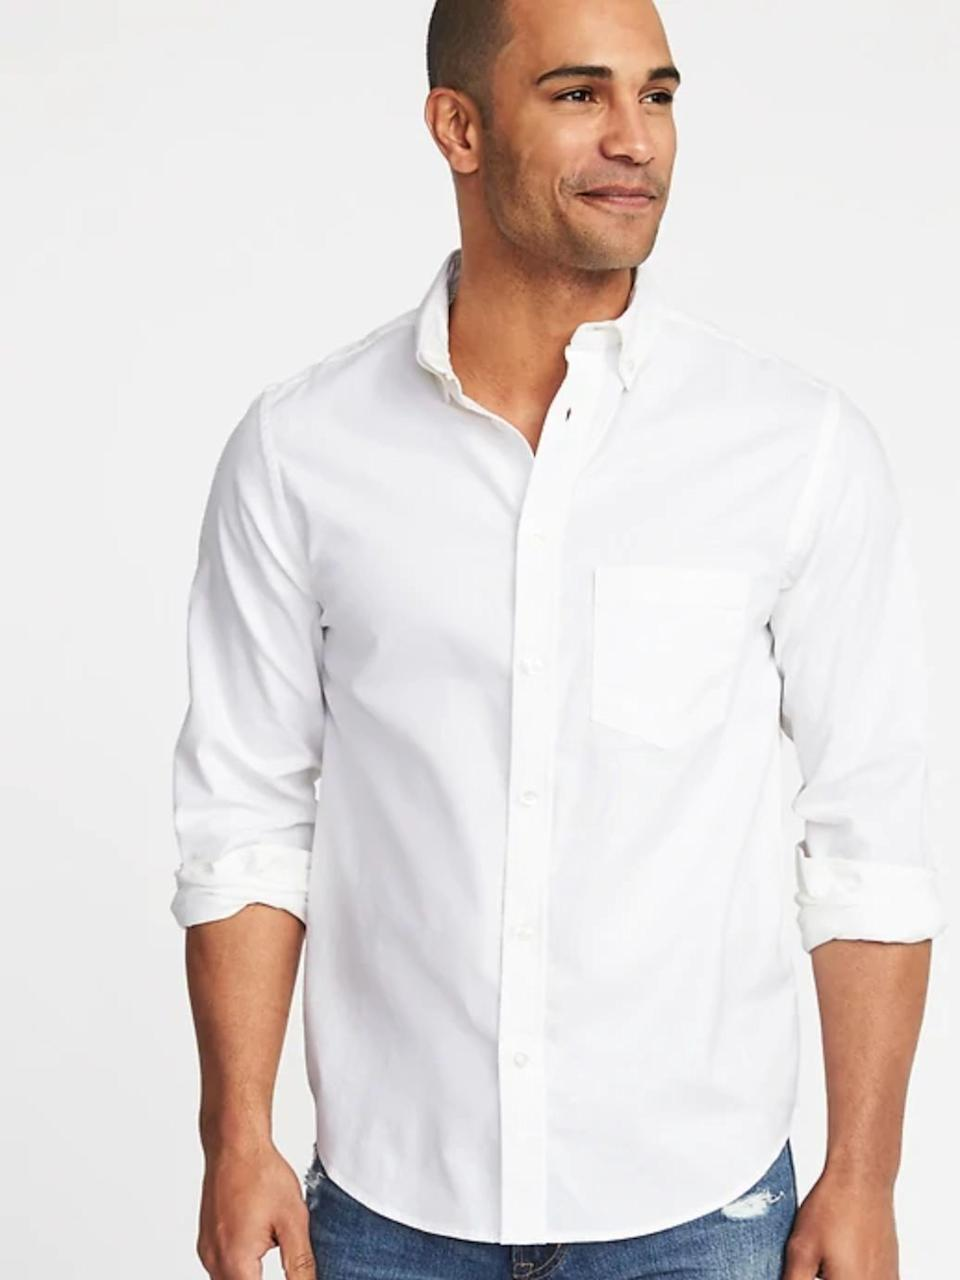 Regular-Fit Clean-Slate Built-In Flex Everyday Oxford Shirt